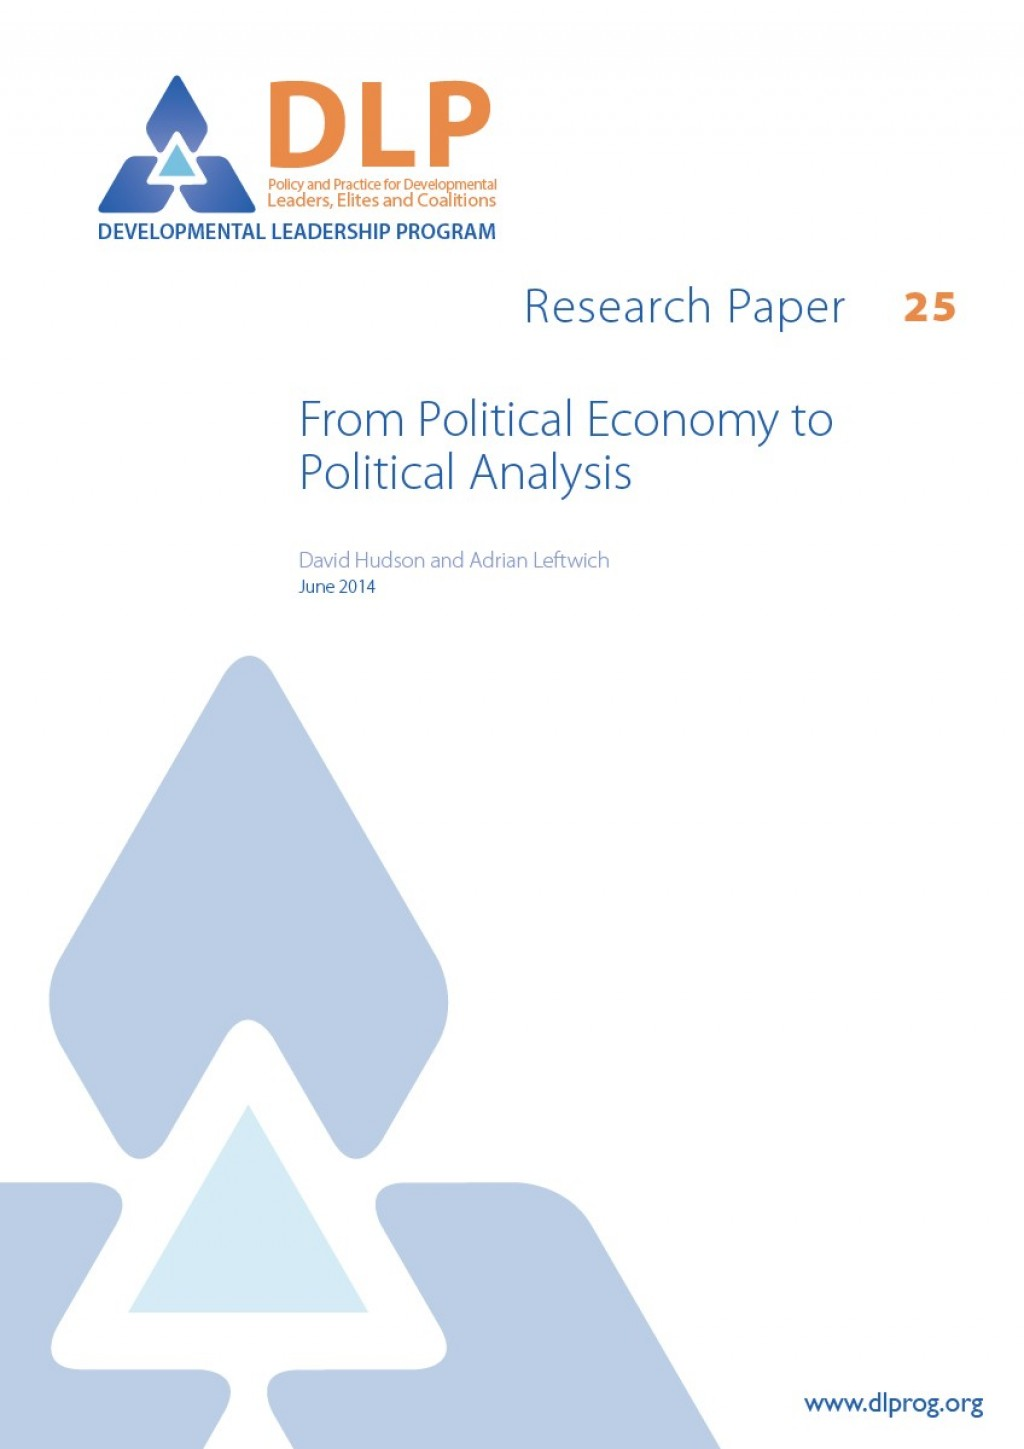 006 Political Economy Research Paper Topics From To Awesome International Global Large